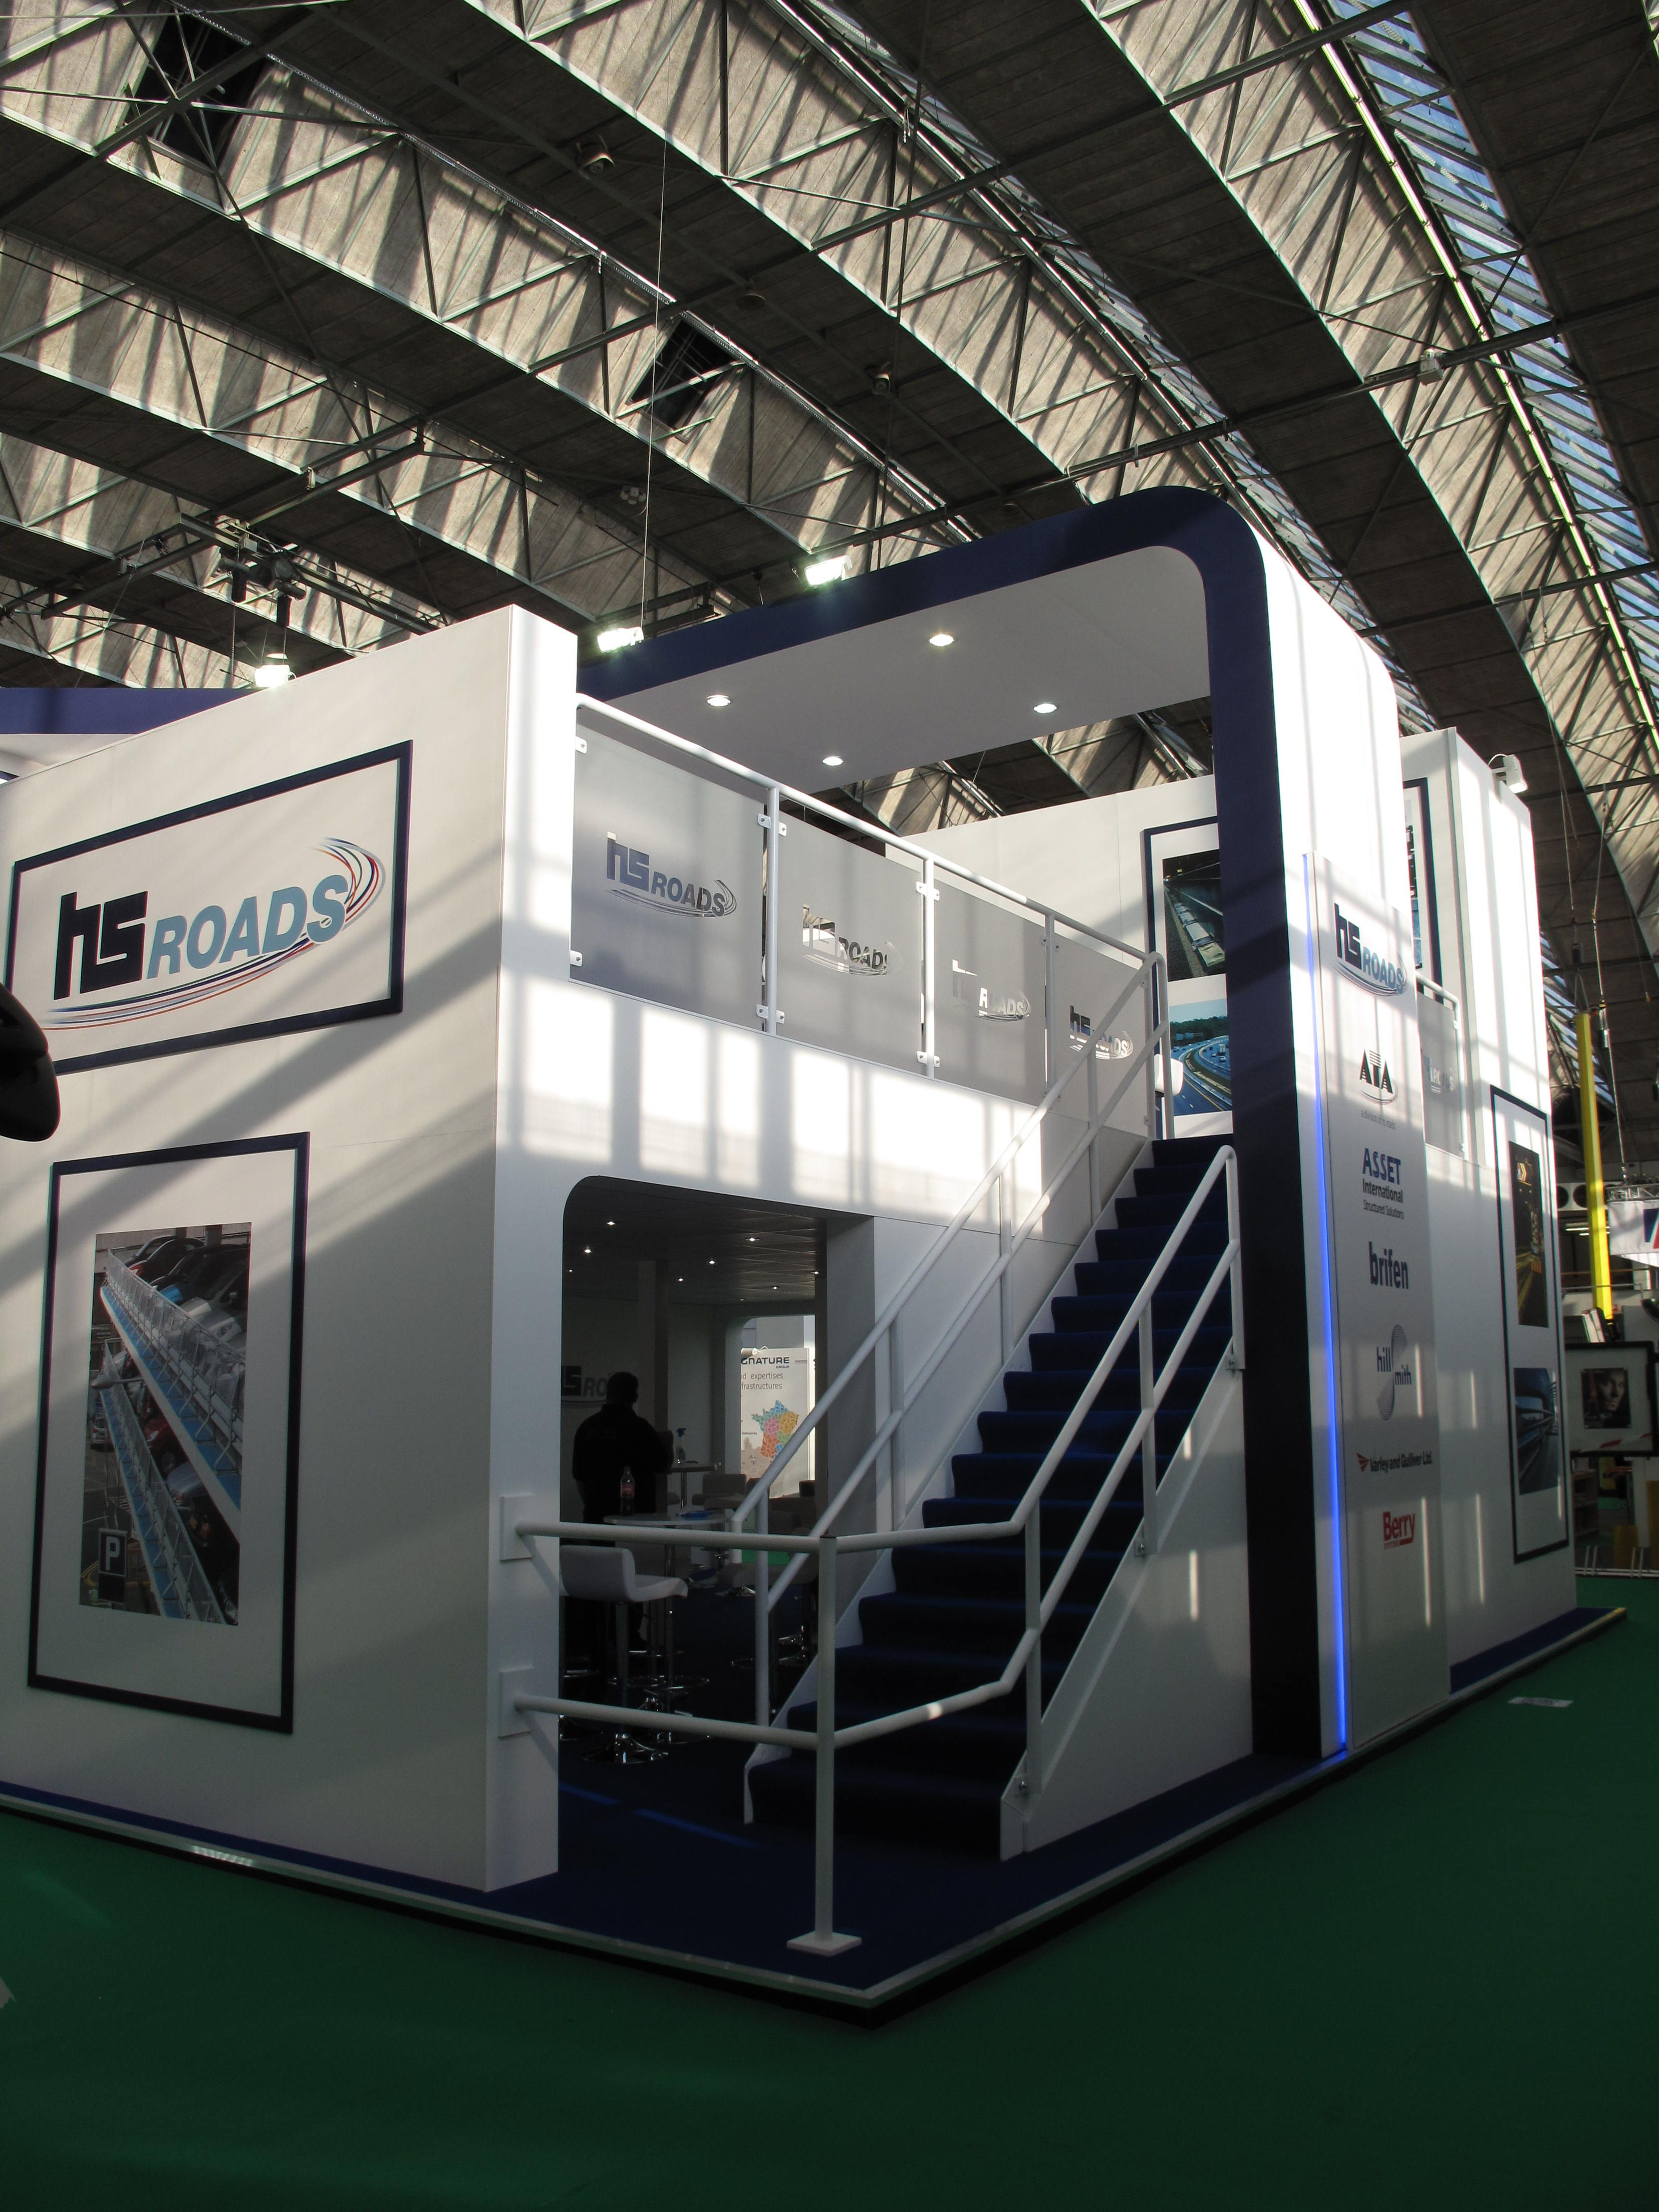 Exhibition Stand Design Amsterdam : Exhibition stand this double deck was designed